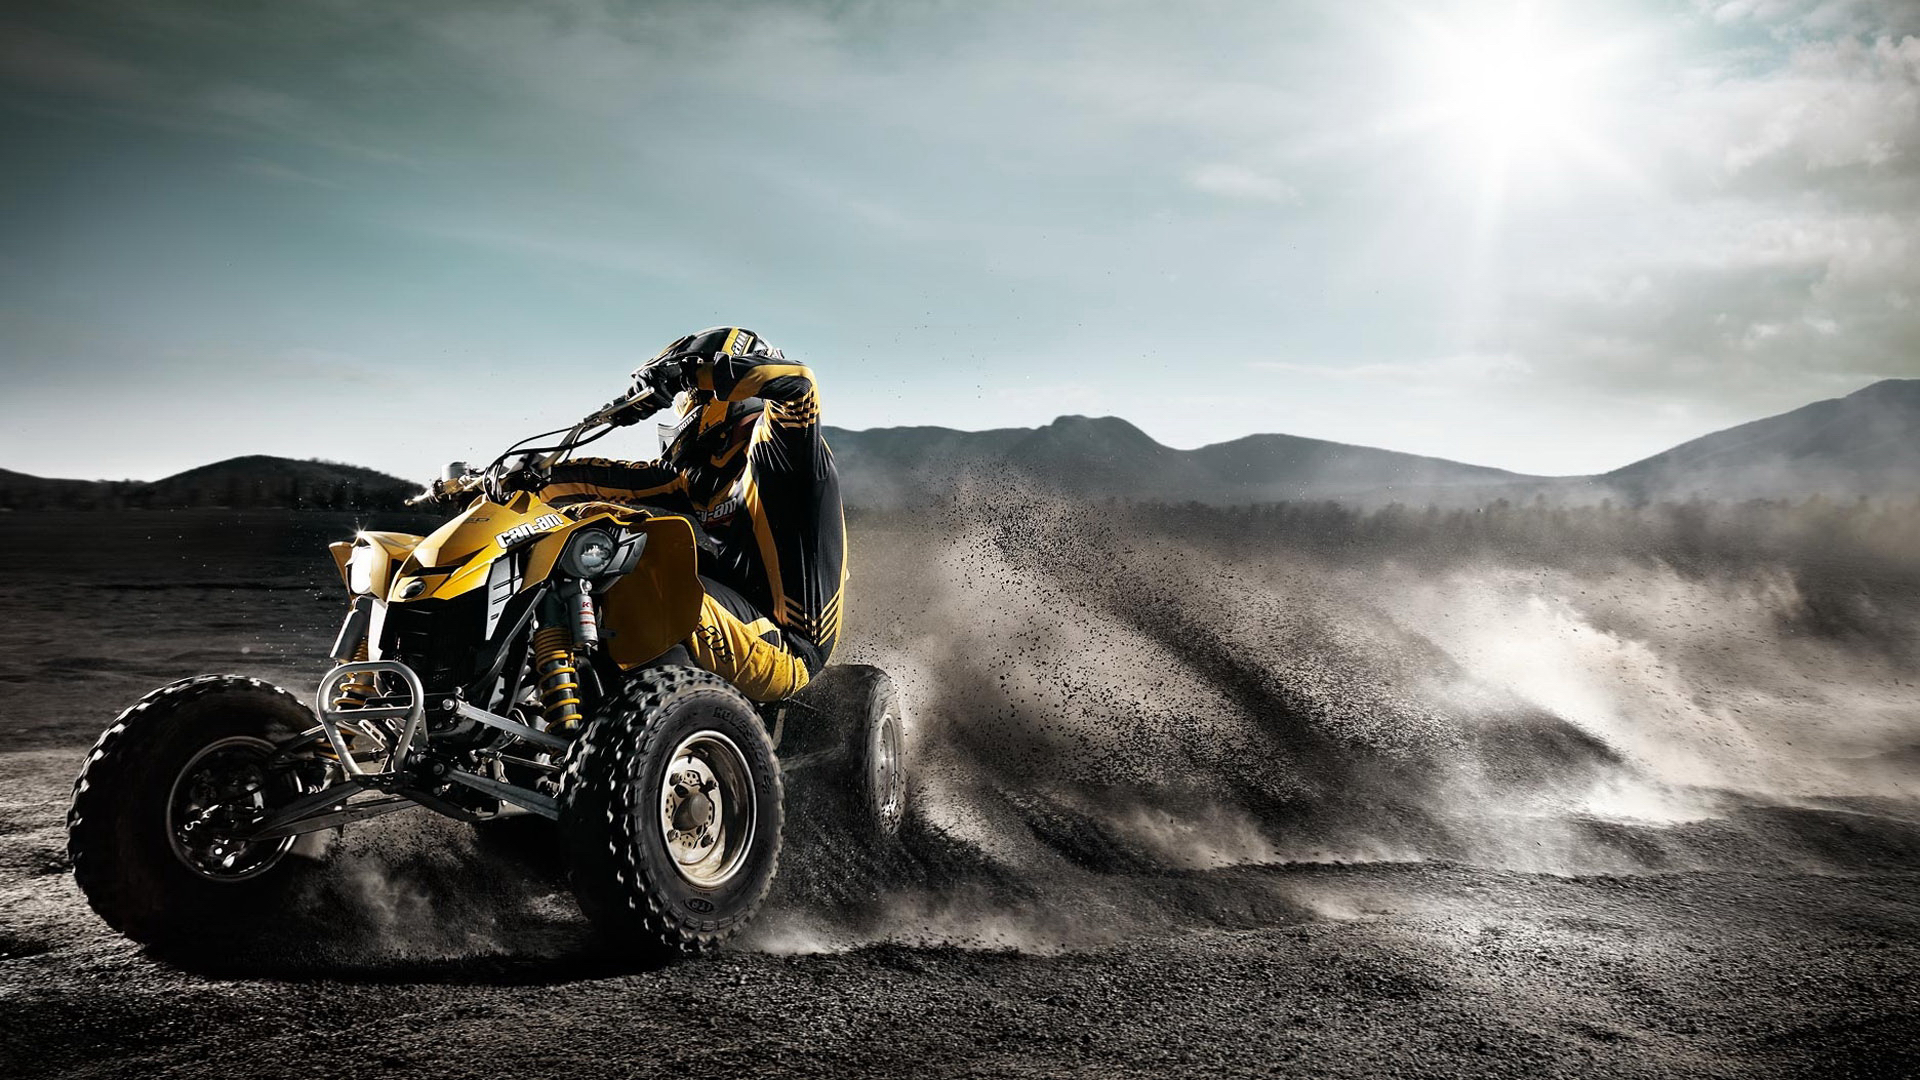 1920x1080 - Can-Am Wallpapers 4